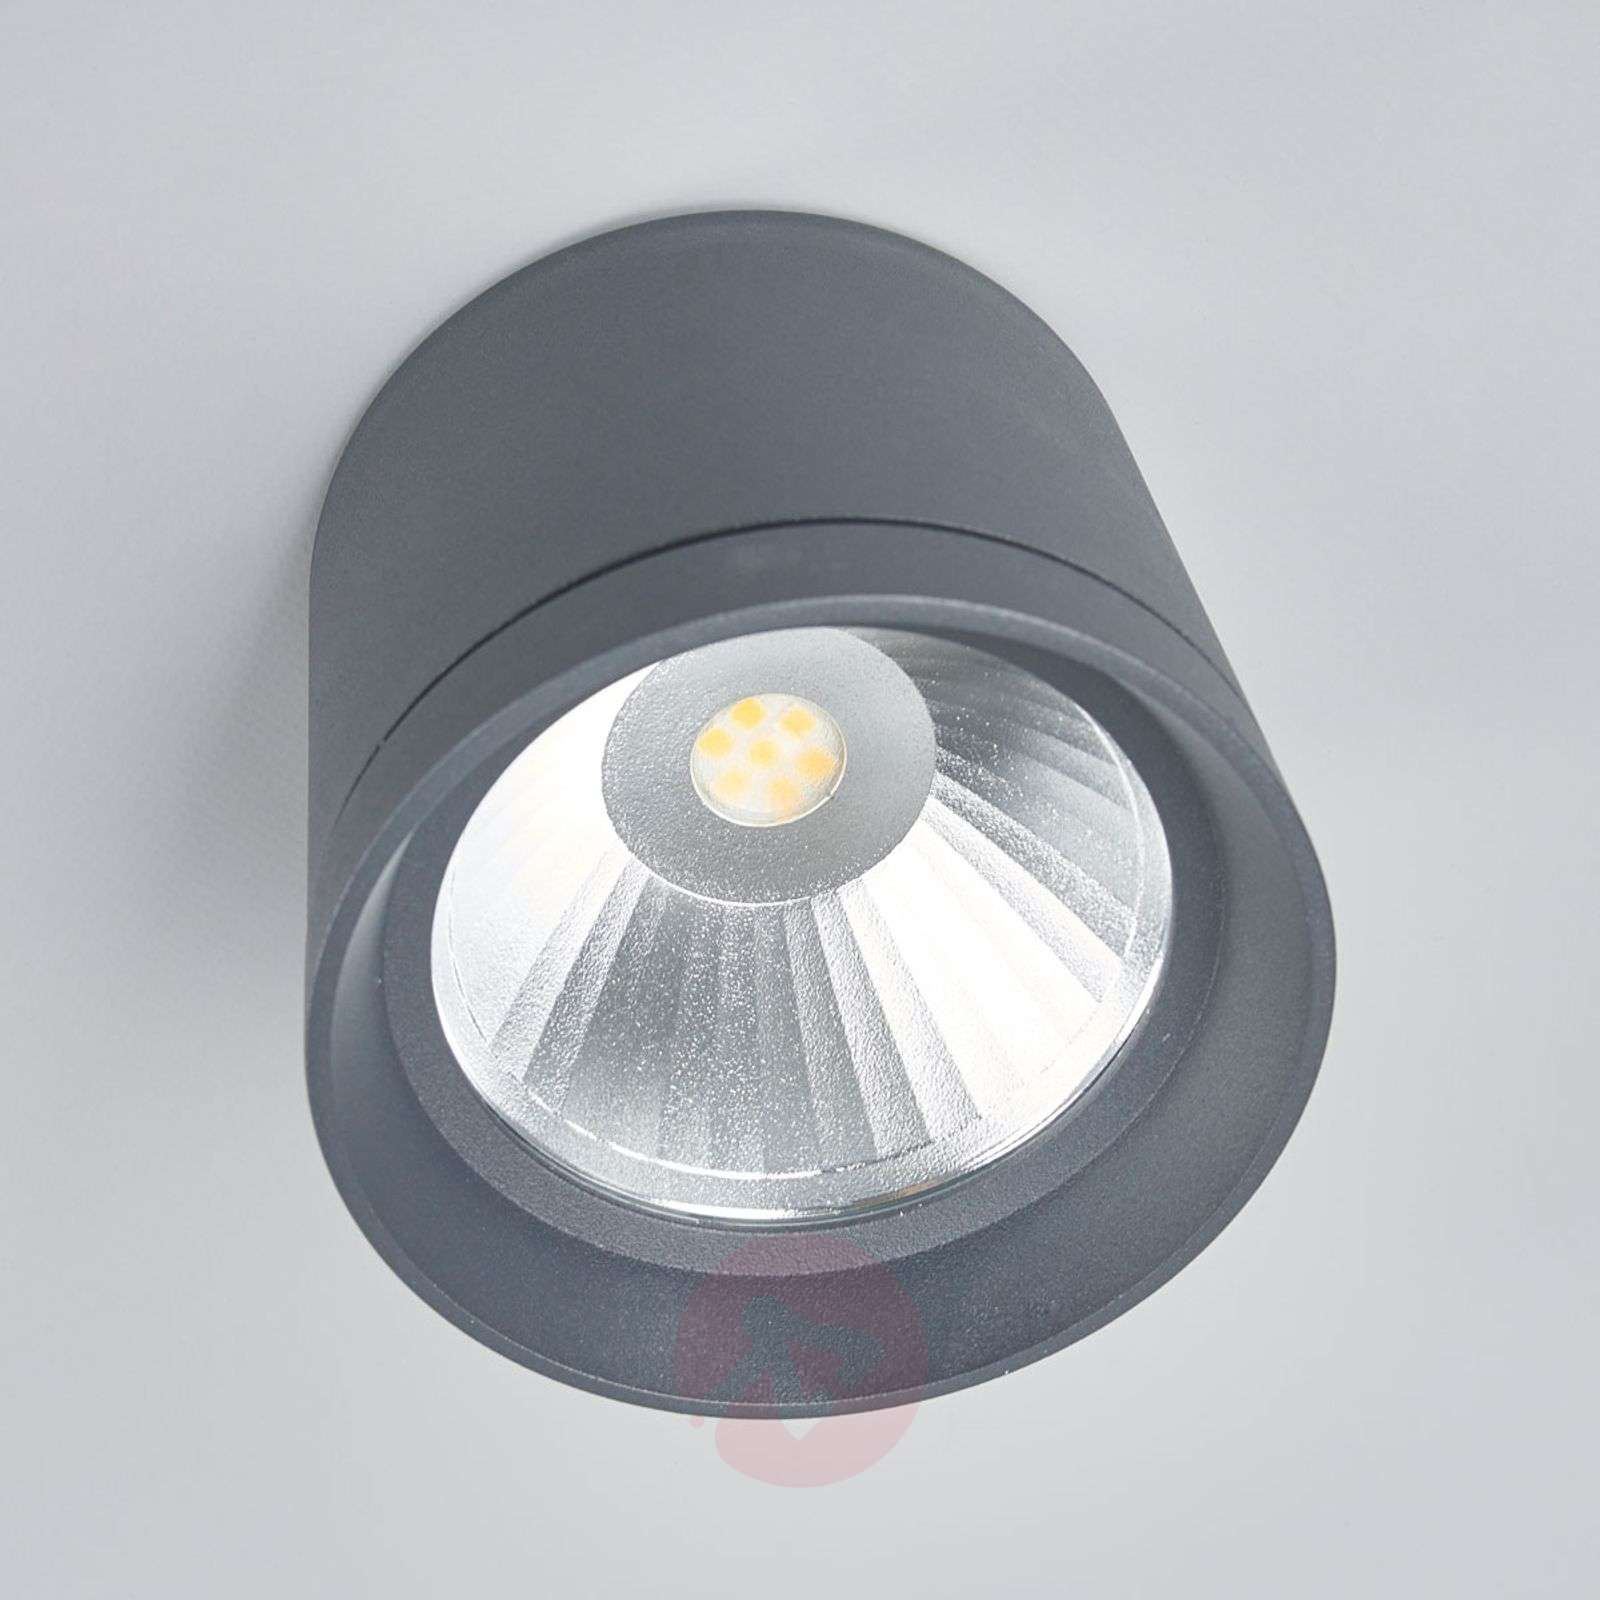 Bega LED outdoor spotlight Gero-1566005-01